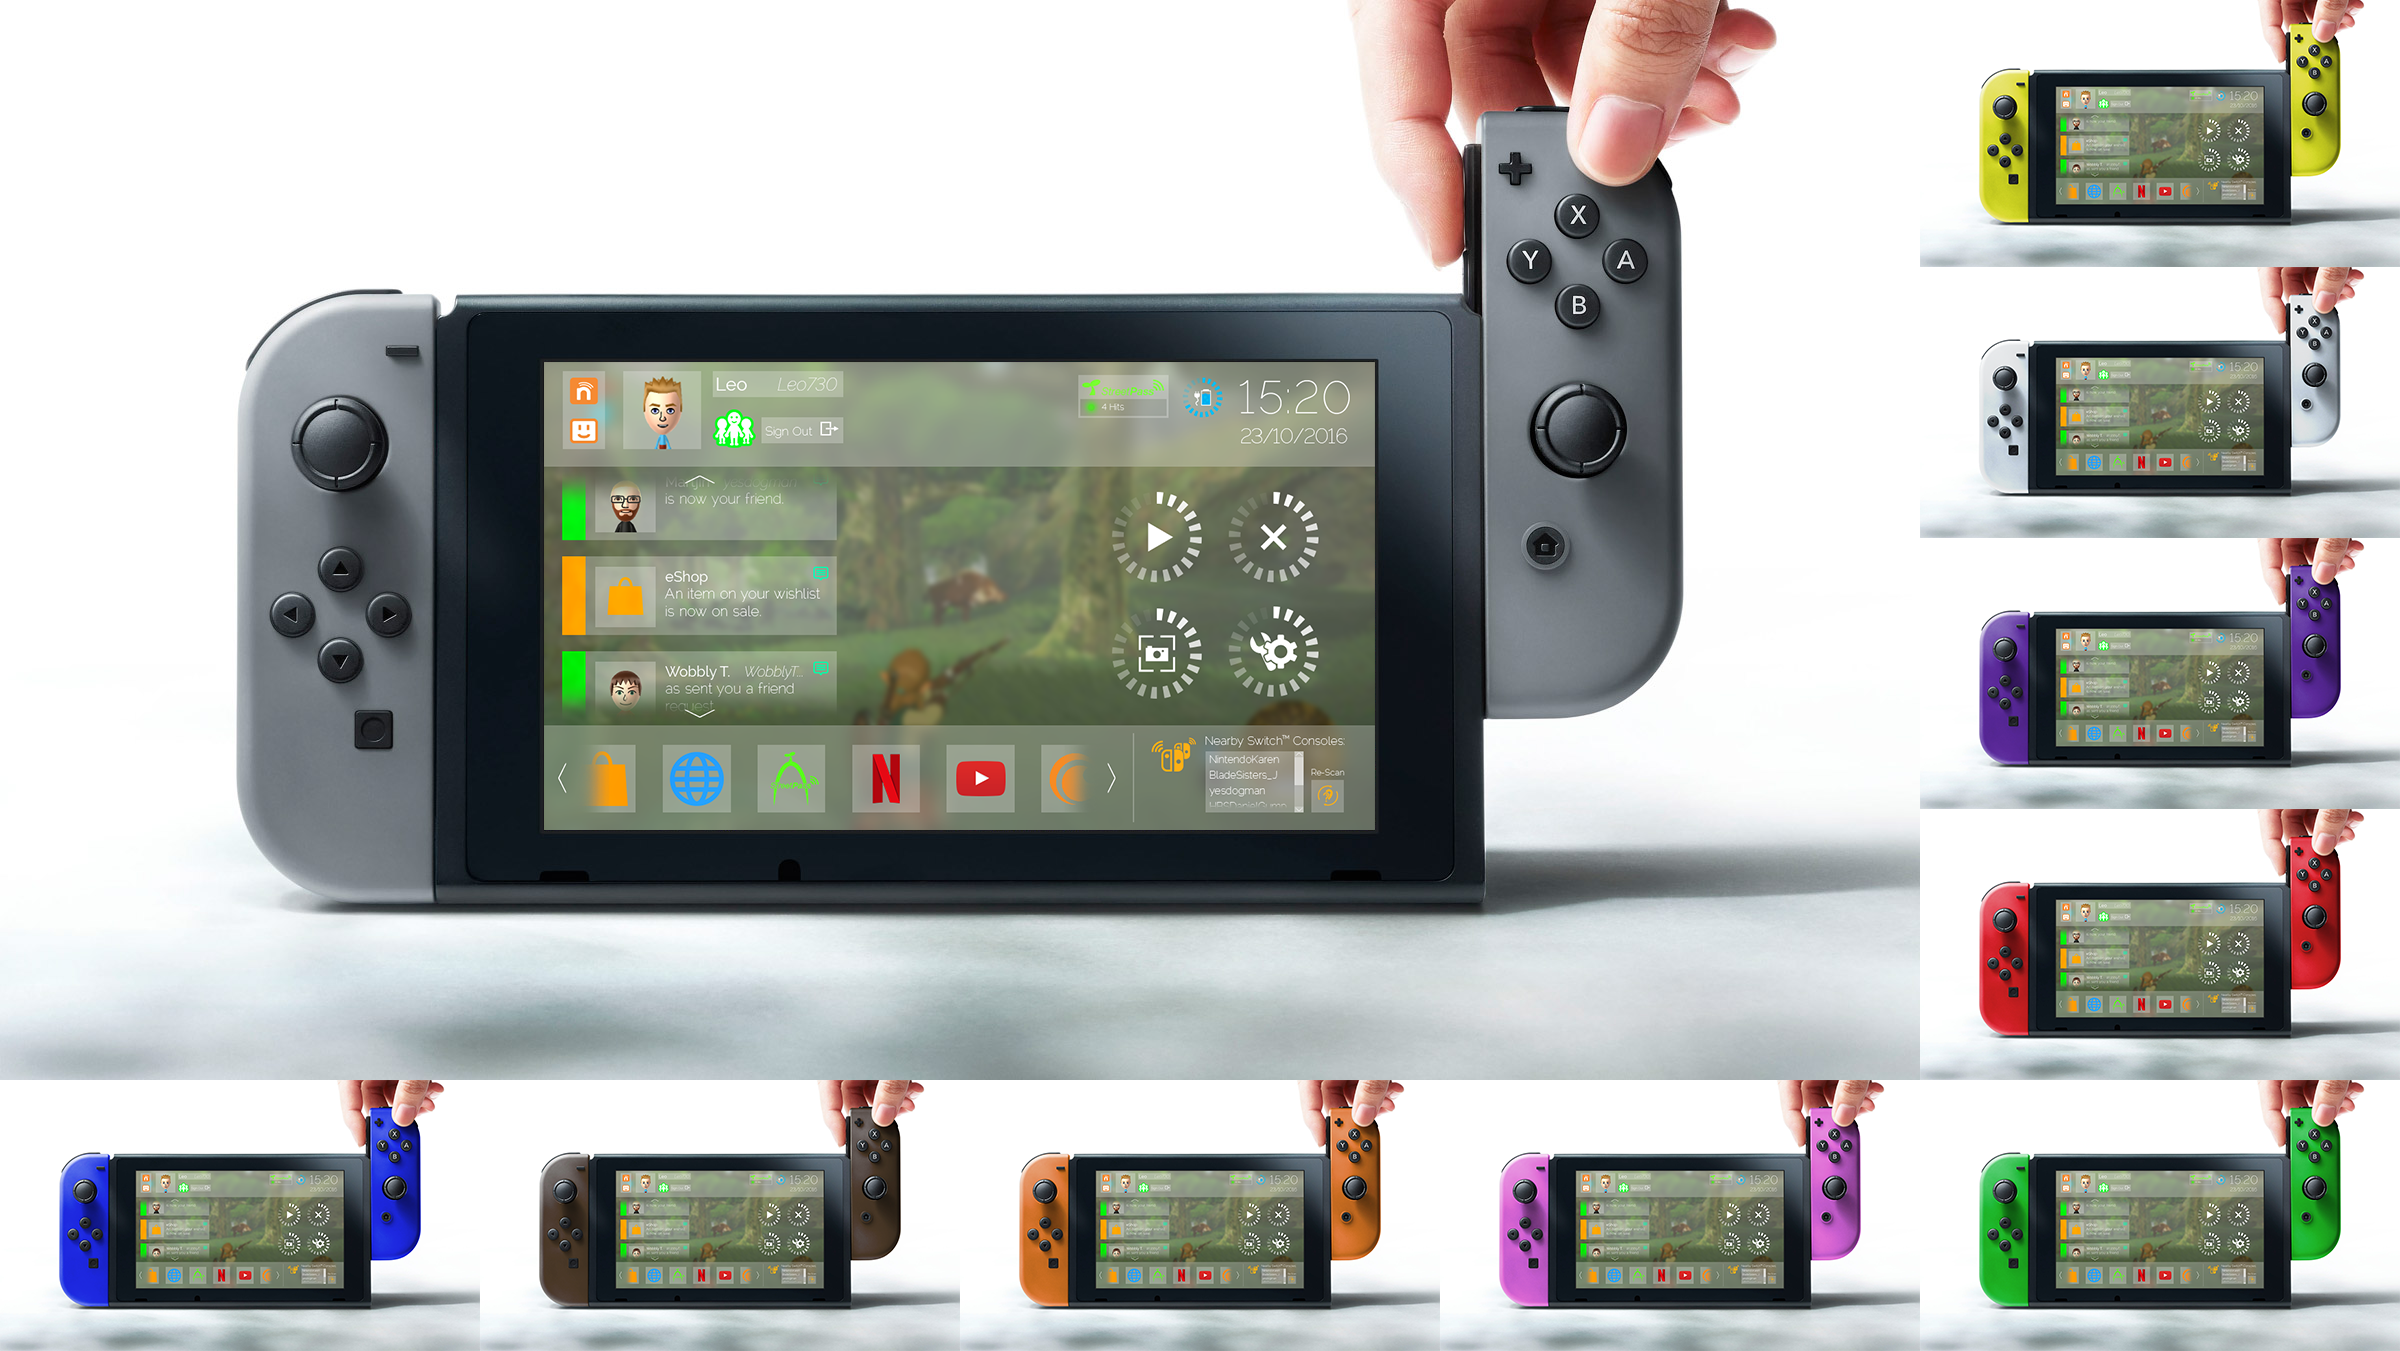 Nintendo Switch nxOS [Concept v2] by unkemptdoodlings